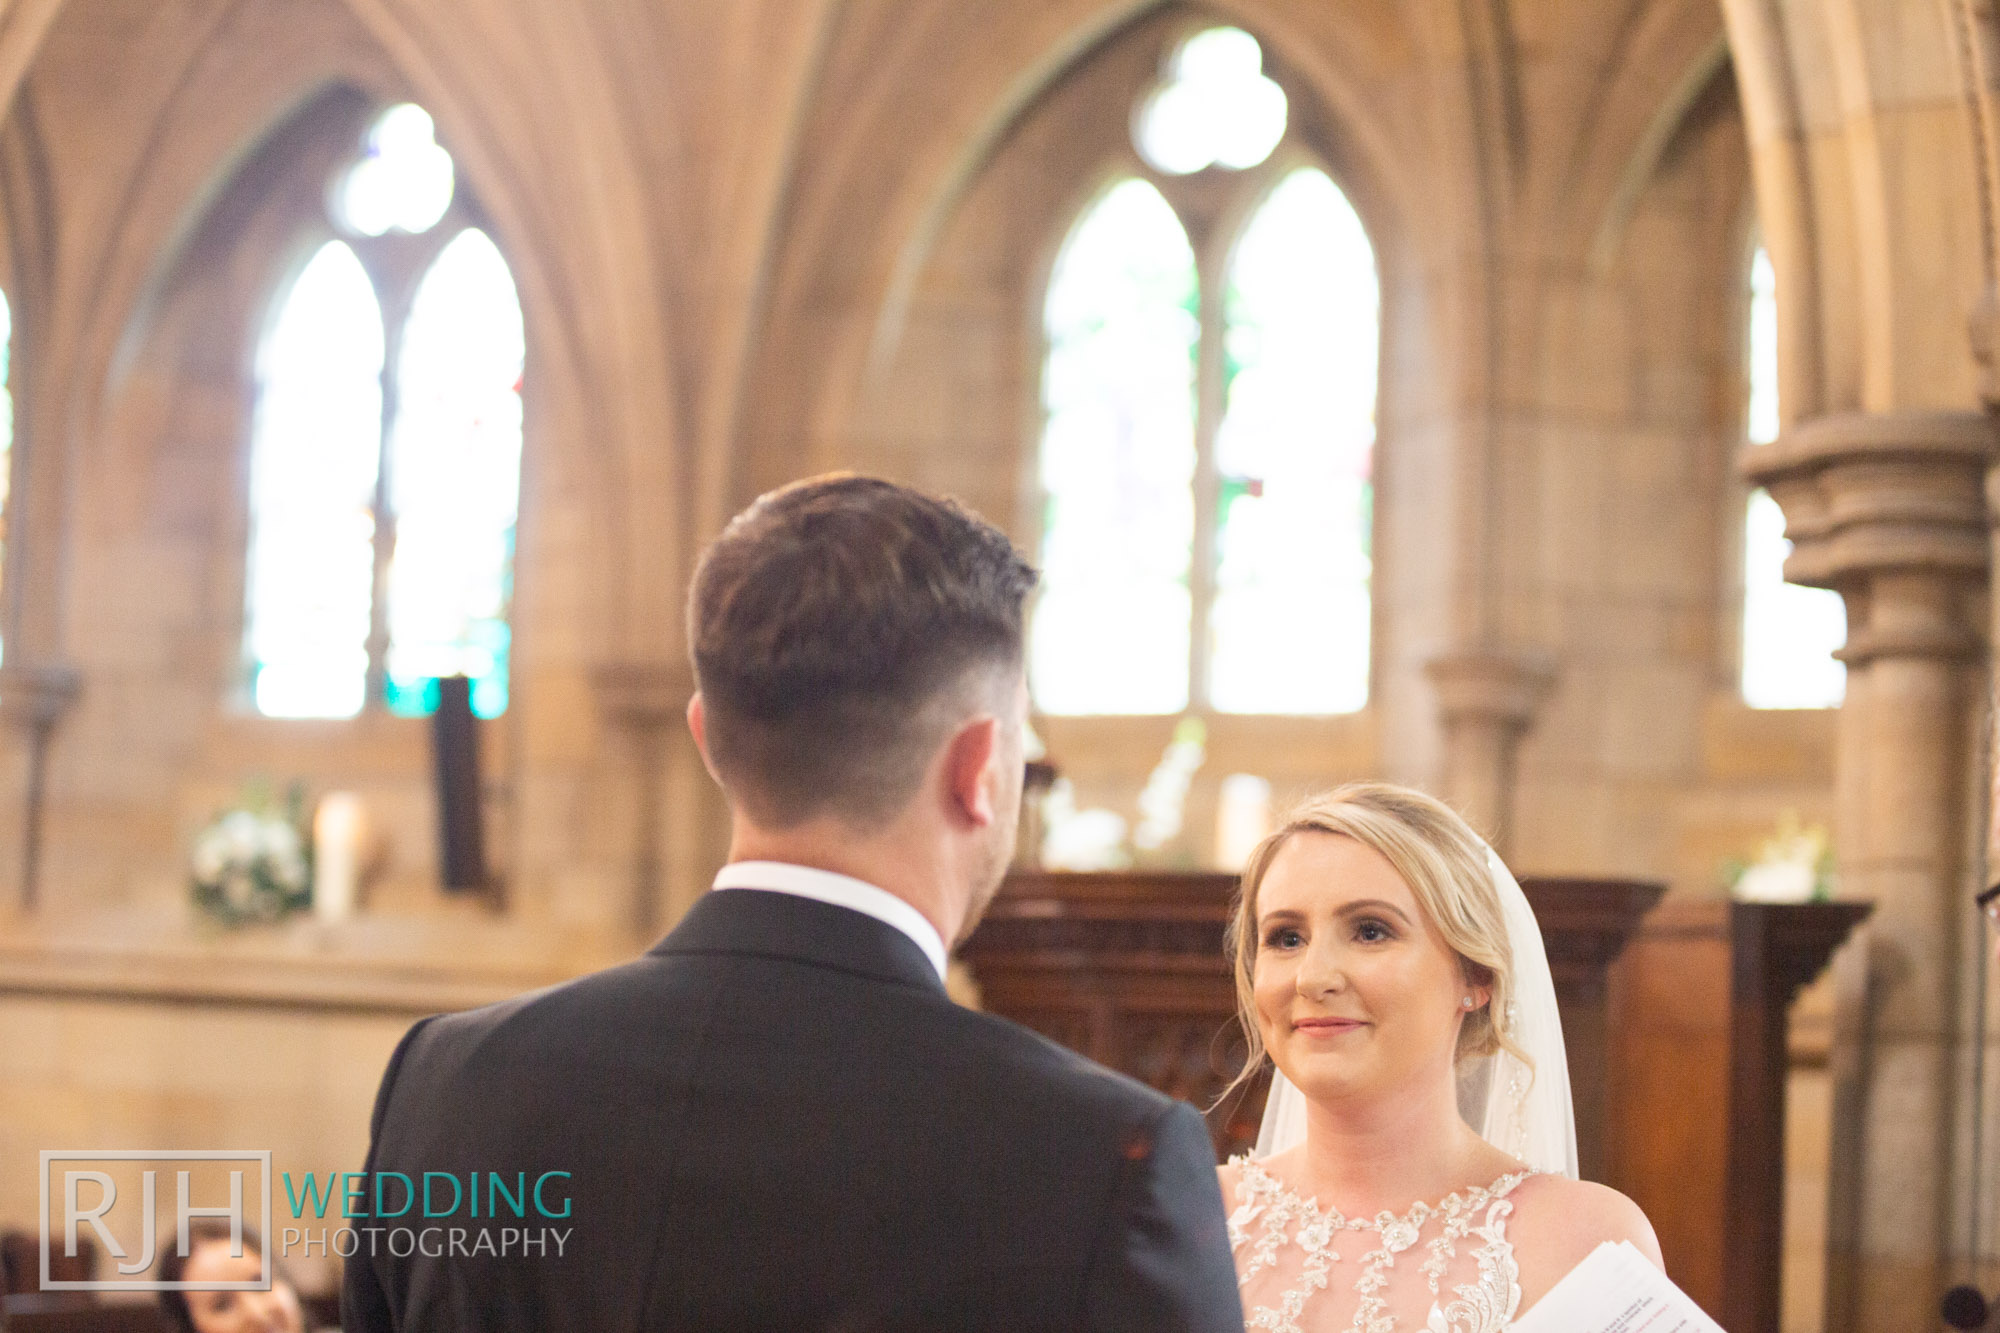 Aston Hall Hotel Wedding Photography_Dowell Wedding_038_3C2A3883.jpg